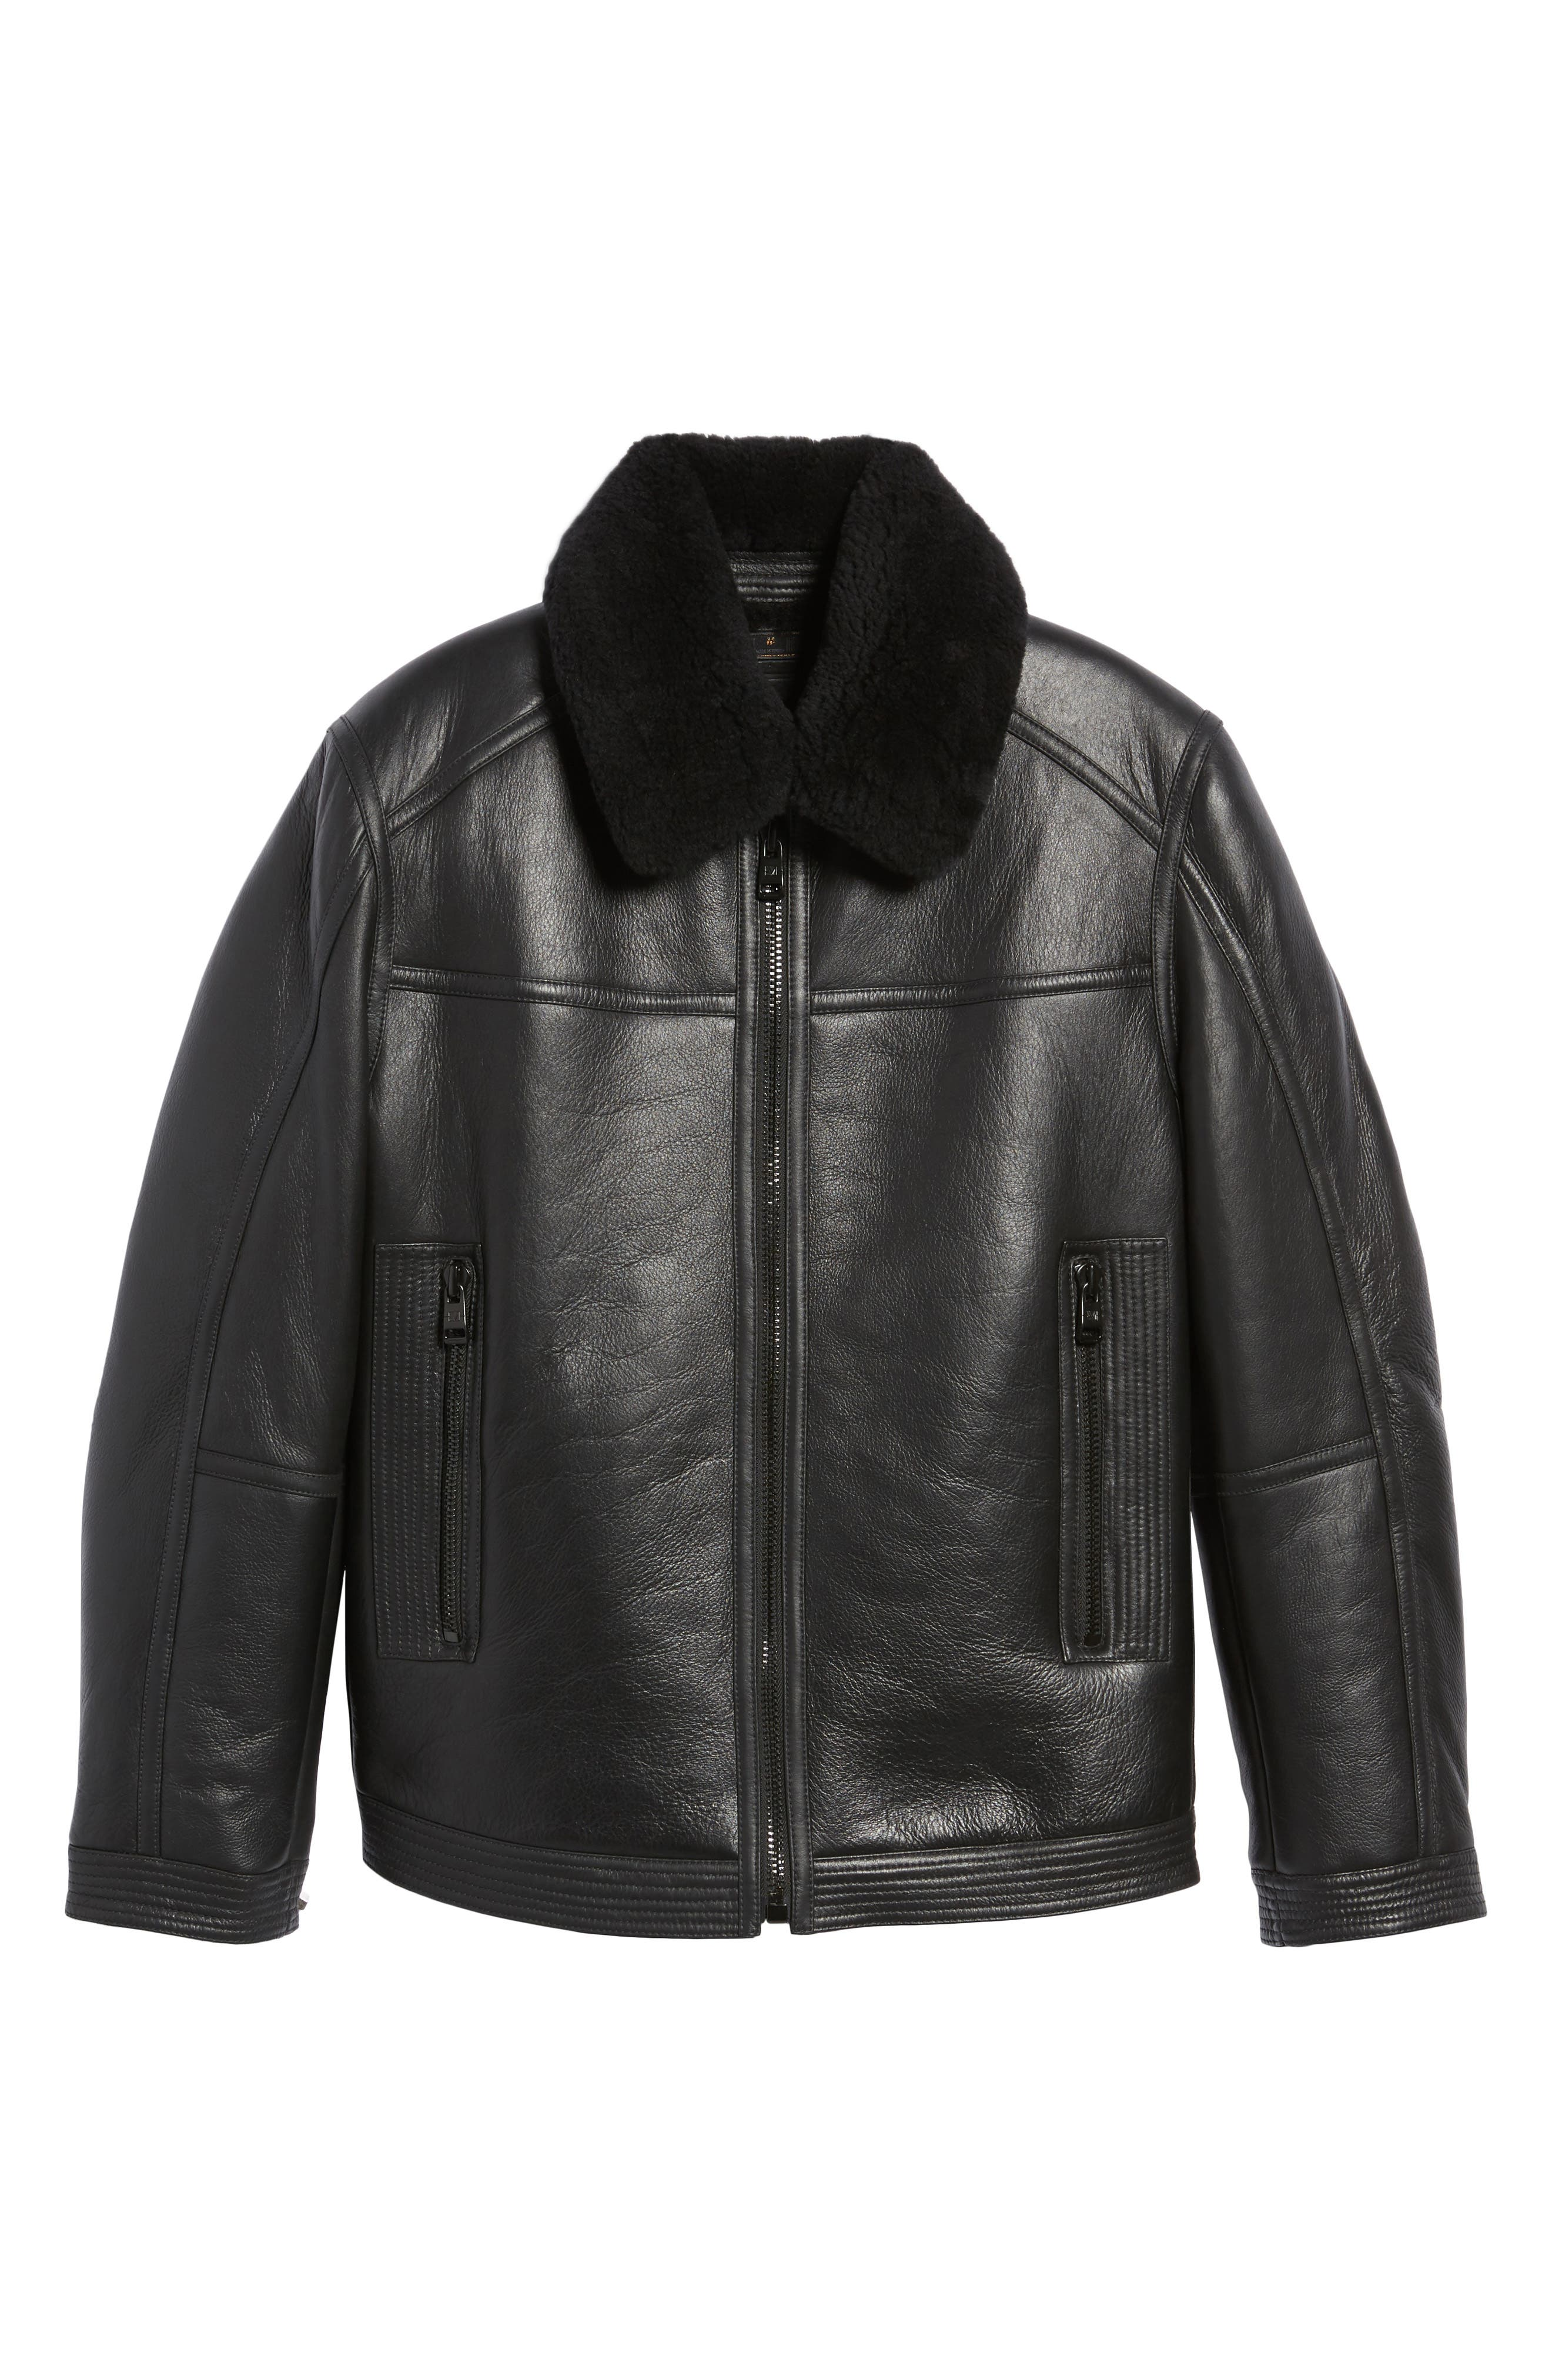 Leather Jacket with Genuine Shearling Collar,                             Alternate thumbnail 5, color,                             001